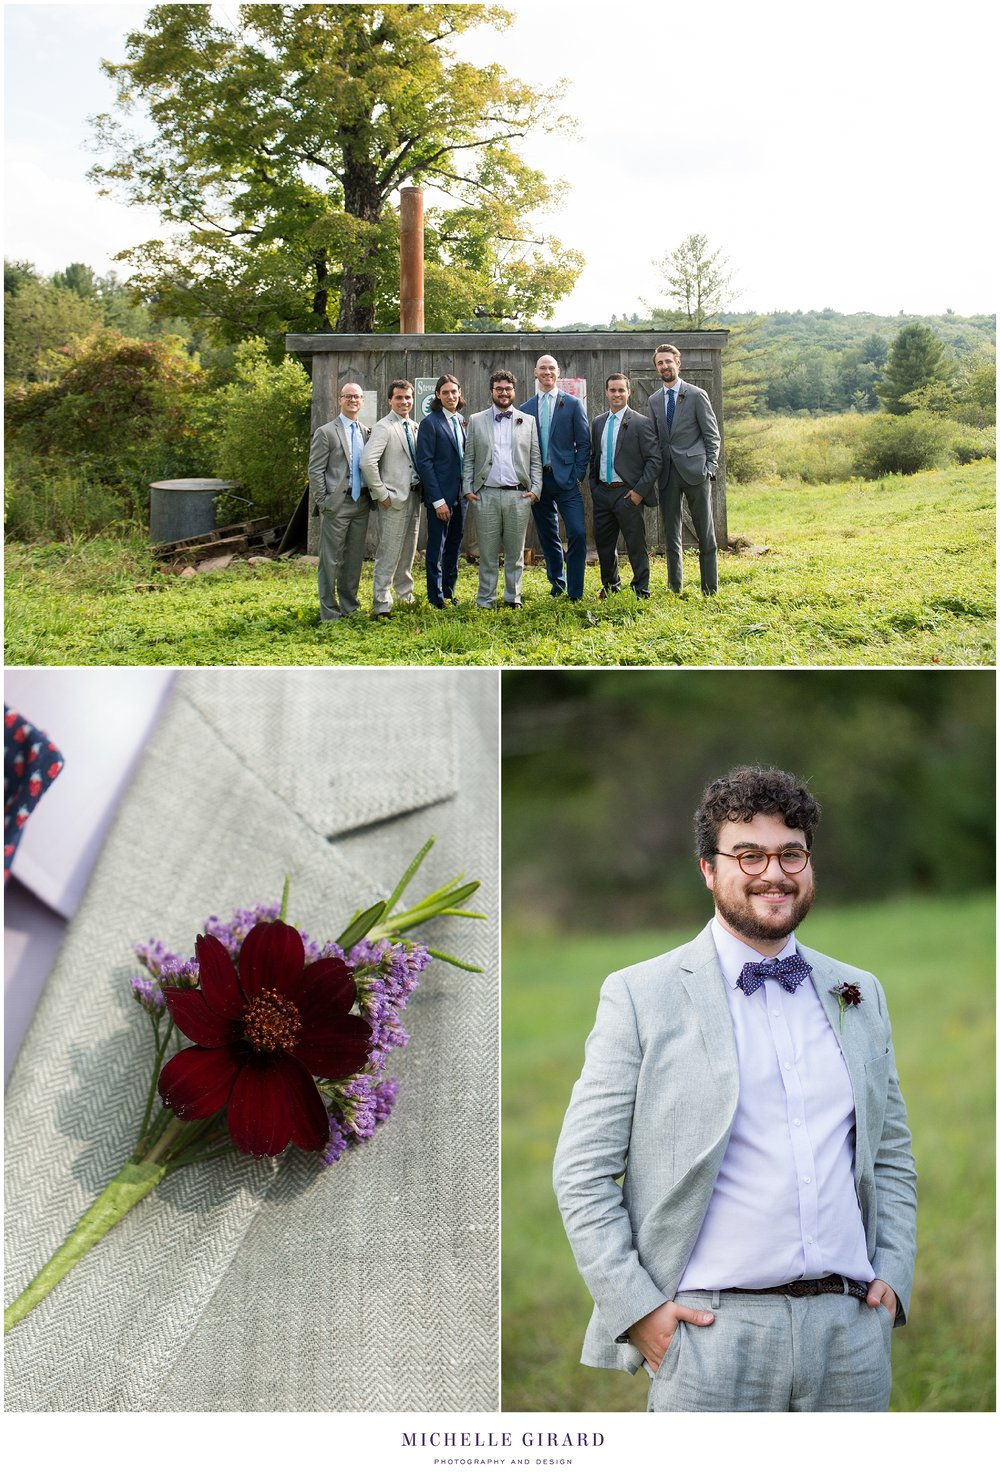 RusticWedding_MaplewoodFamilyFarm_MountainTopCeremony_MichelleGirardPhotography10.jpg